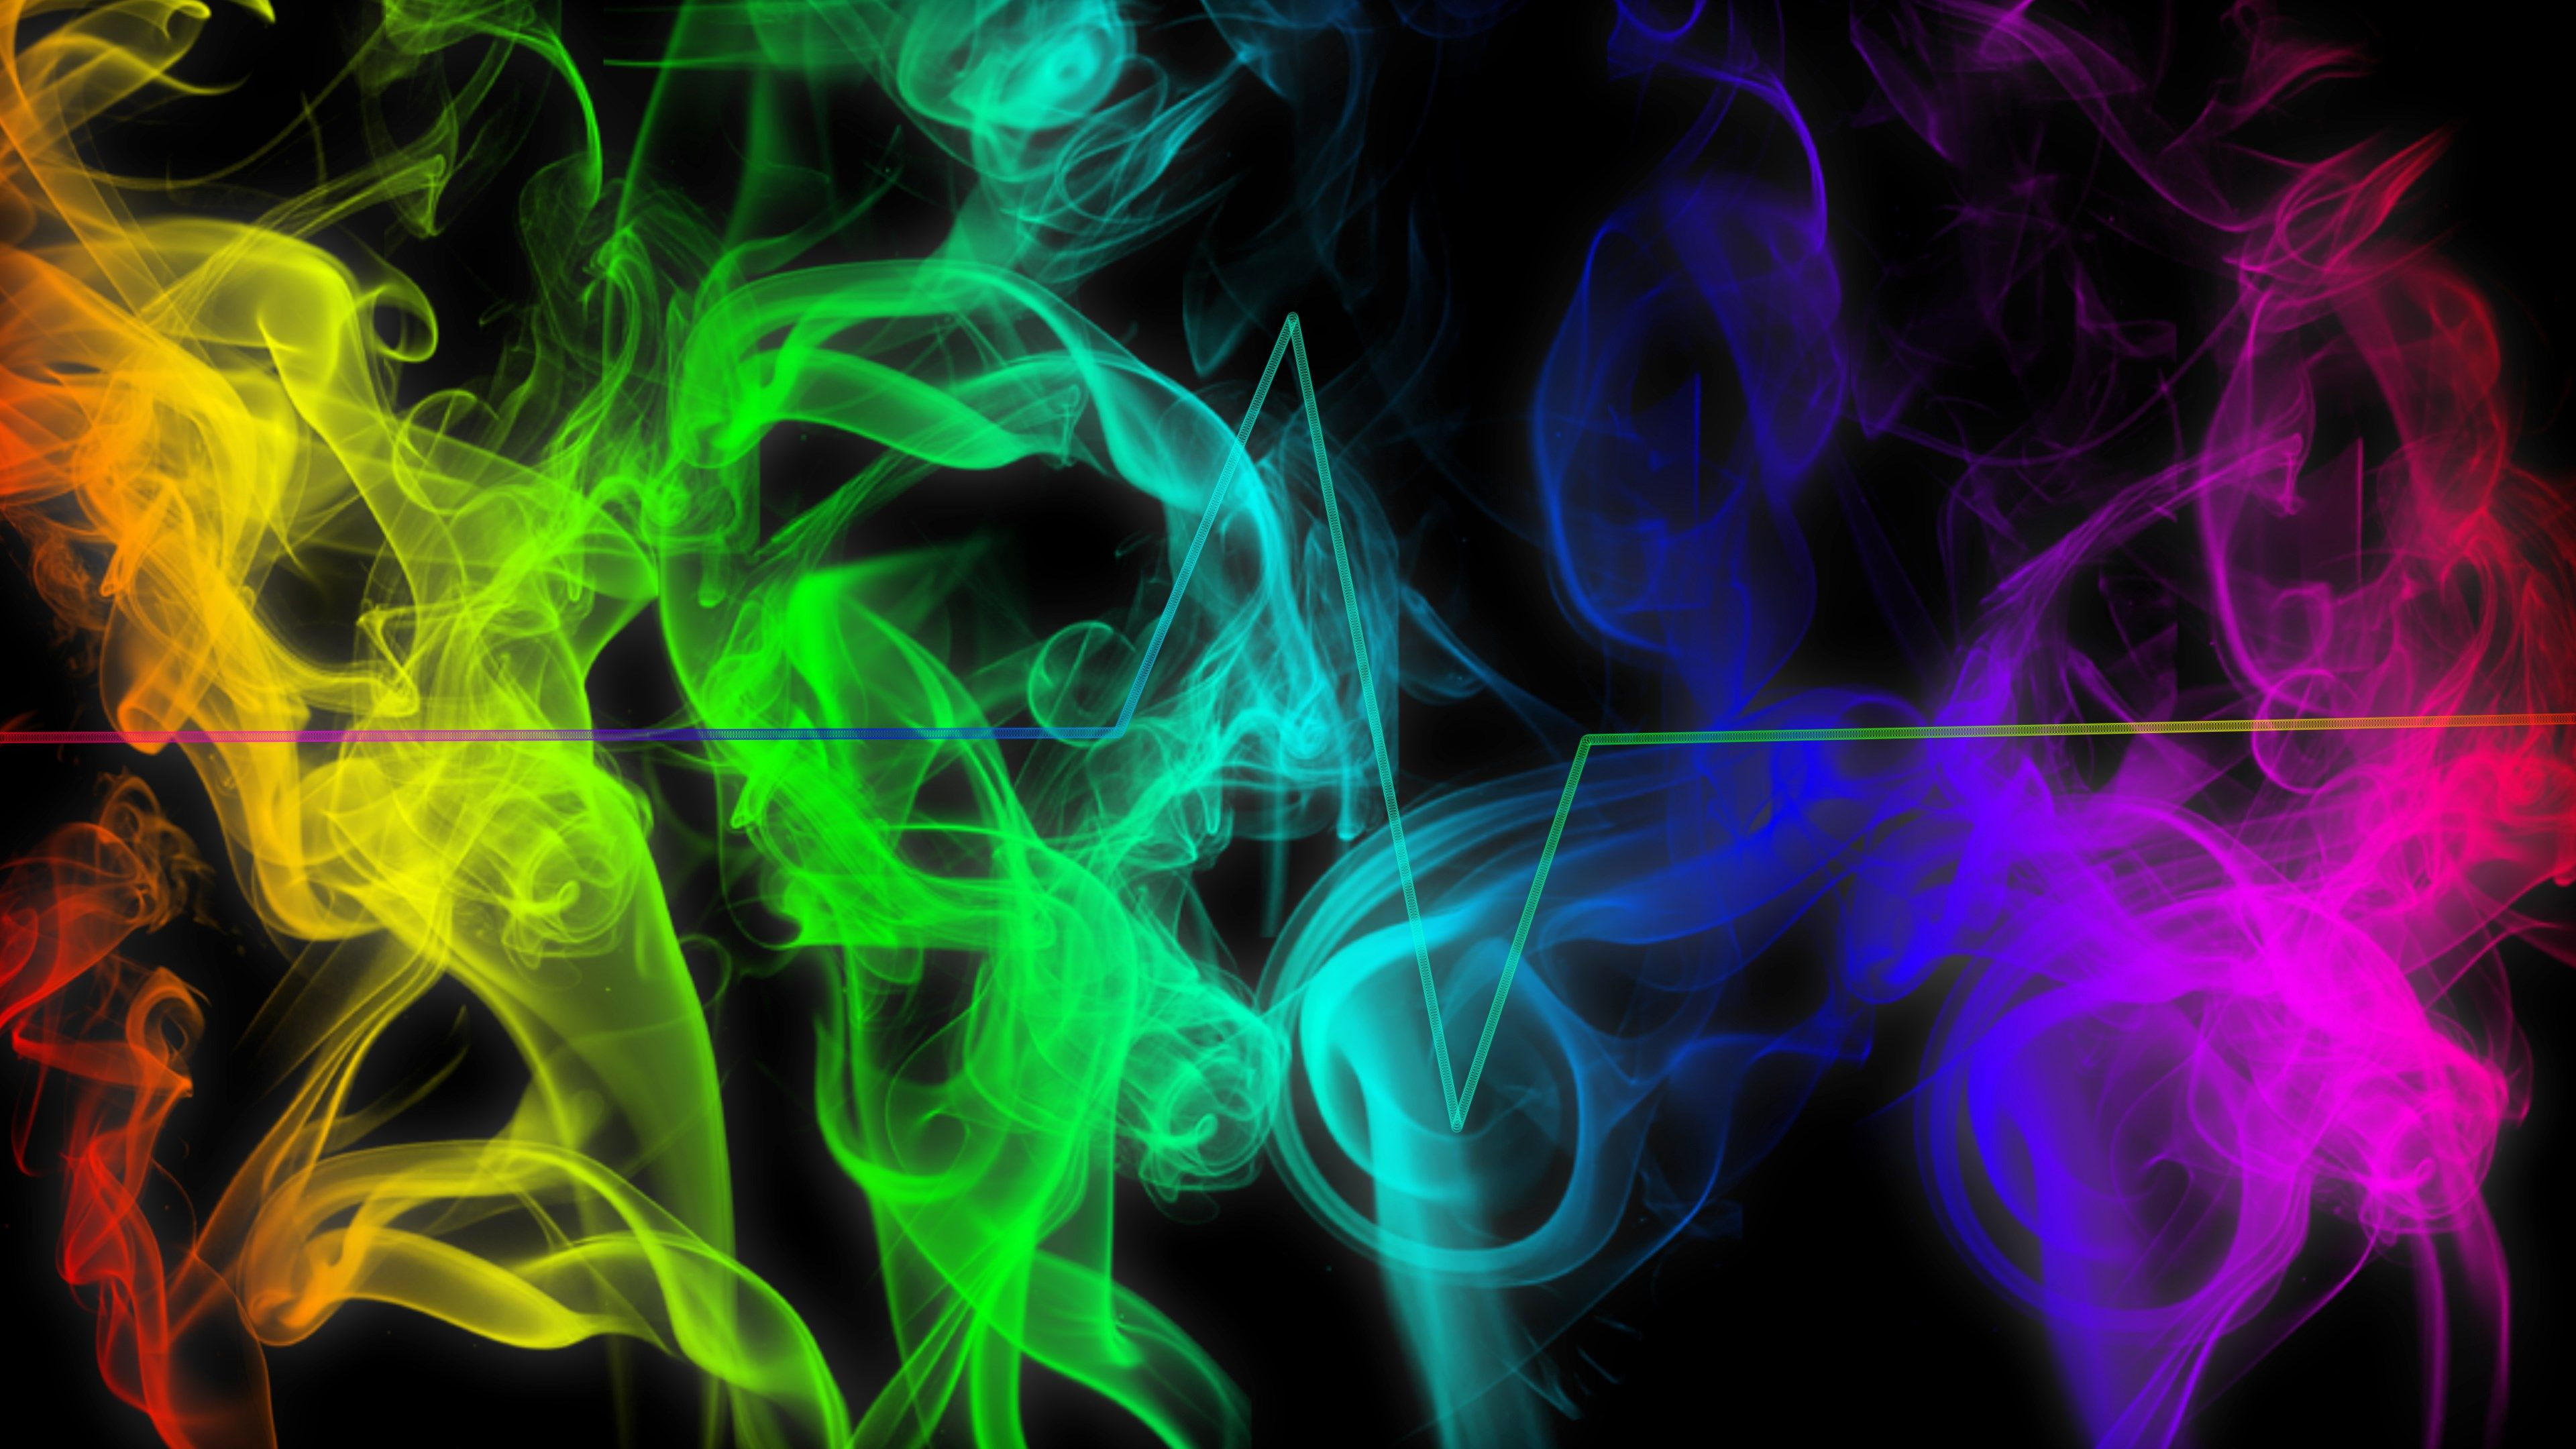 4k Smoke Hd Wallpaper 3840x2160 Smoke Wallpaper